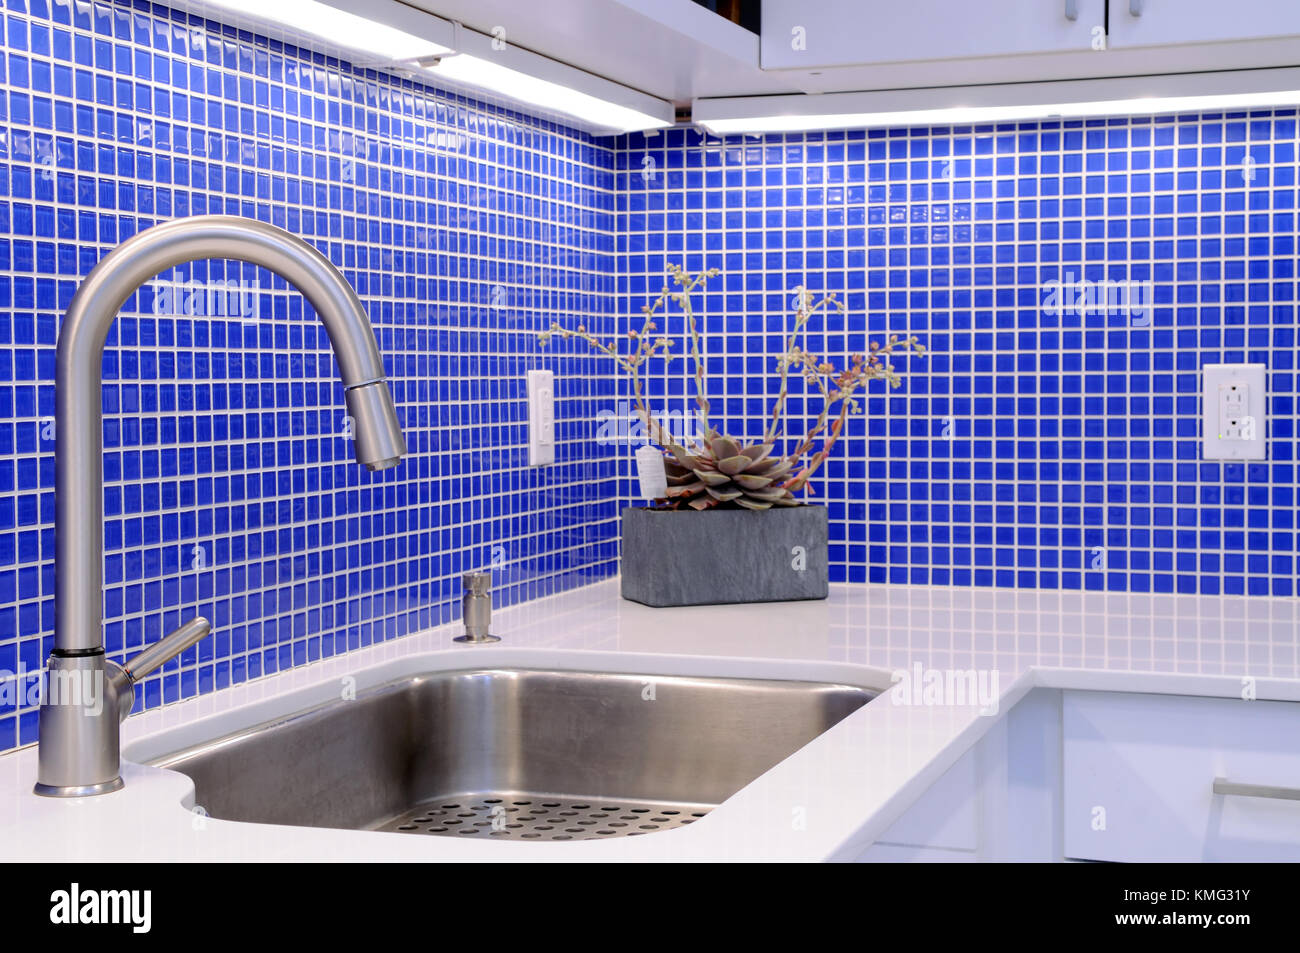 Blue and white tiles stock photos blue and white tiles stock blue backsplash tiles white countertop single handle kitchen faucet contemporary home interior design dailygadgetfo Image collections